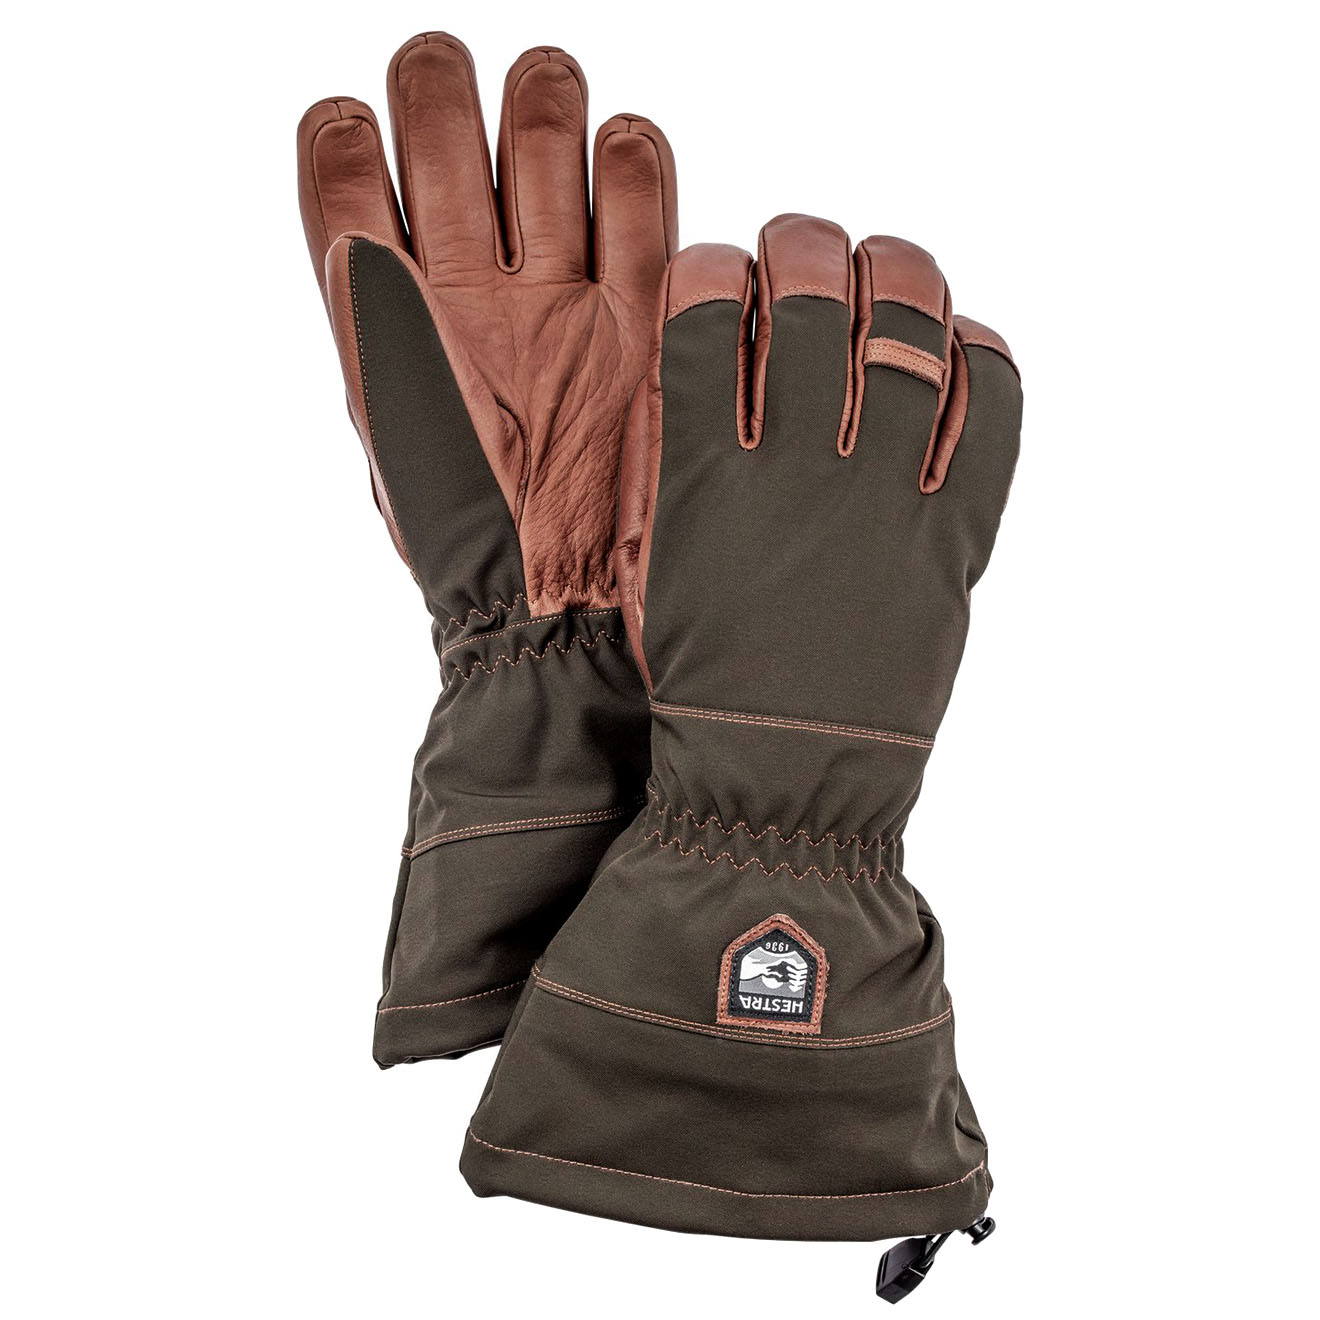 a6c42d786edc6 Hestra Hunters Gauntlet CZone Mens Glove Dark Forest - The Sporting ...